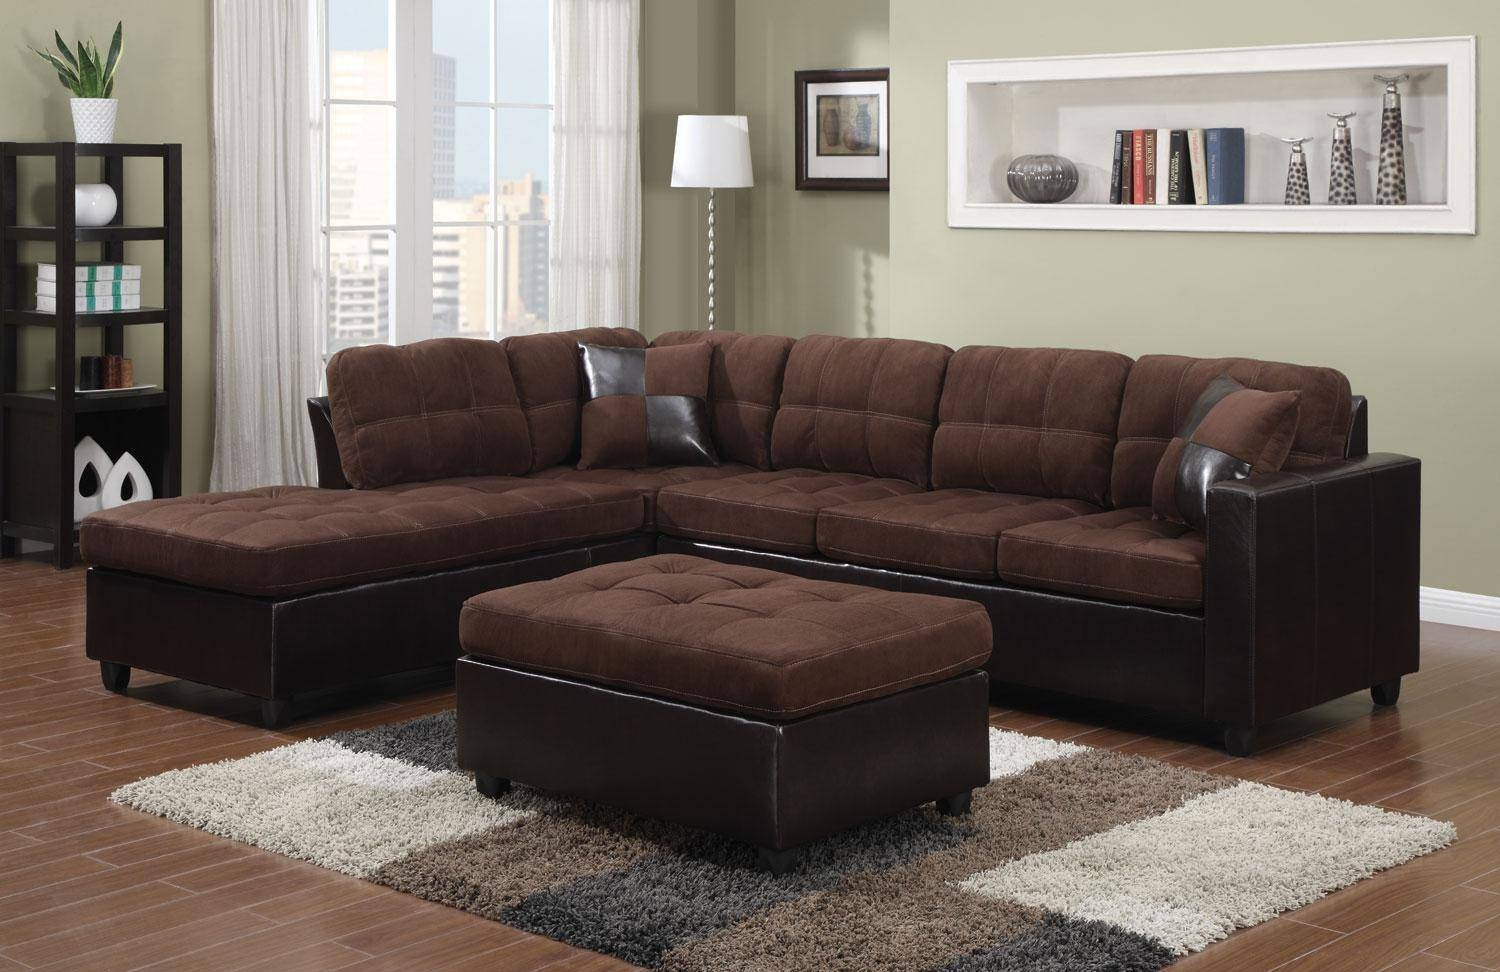 Mallory Lf Iv Sectional Sofa 505655 Coaster Furniture Sectional with Coaster Sectional Sofas (Image 13 of 15)